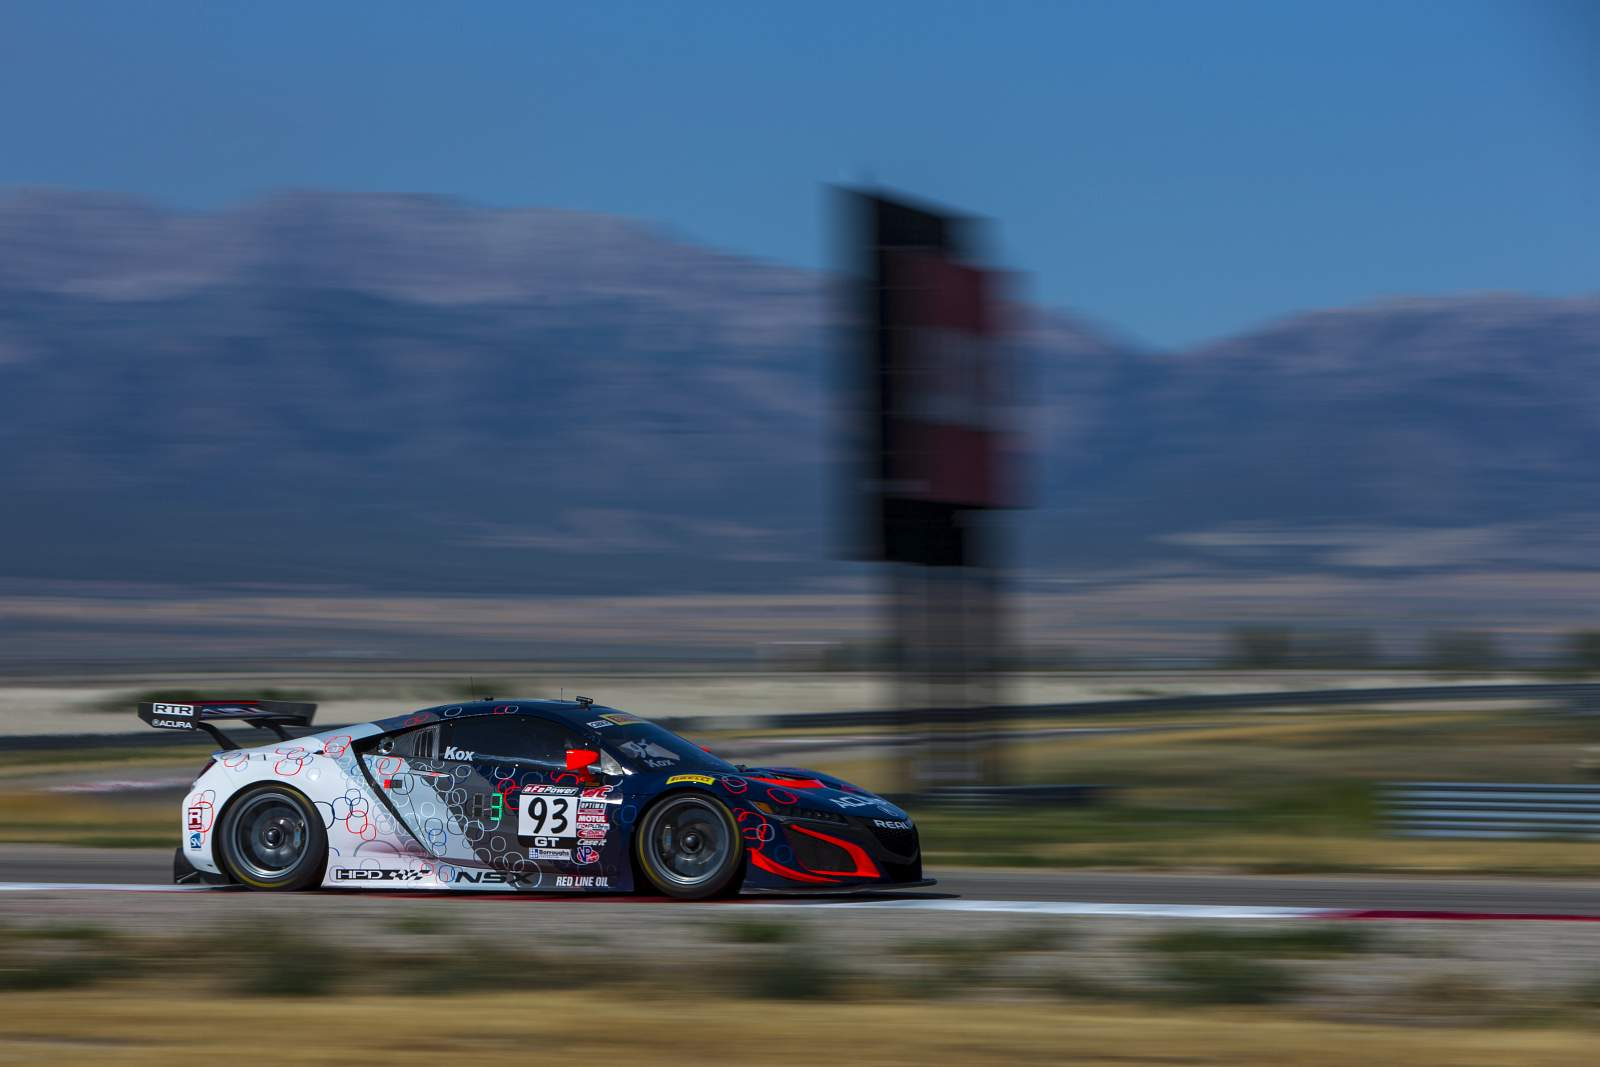 peter-kox-realtime-racing-pirelli-world-challenge-utah-motorsport-campus-22